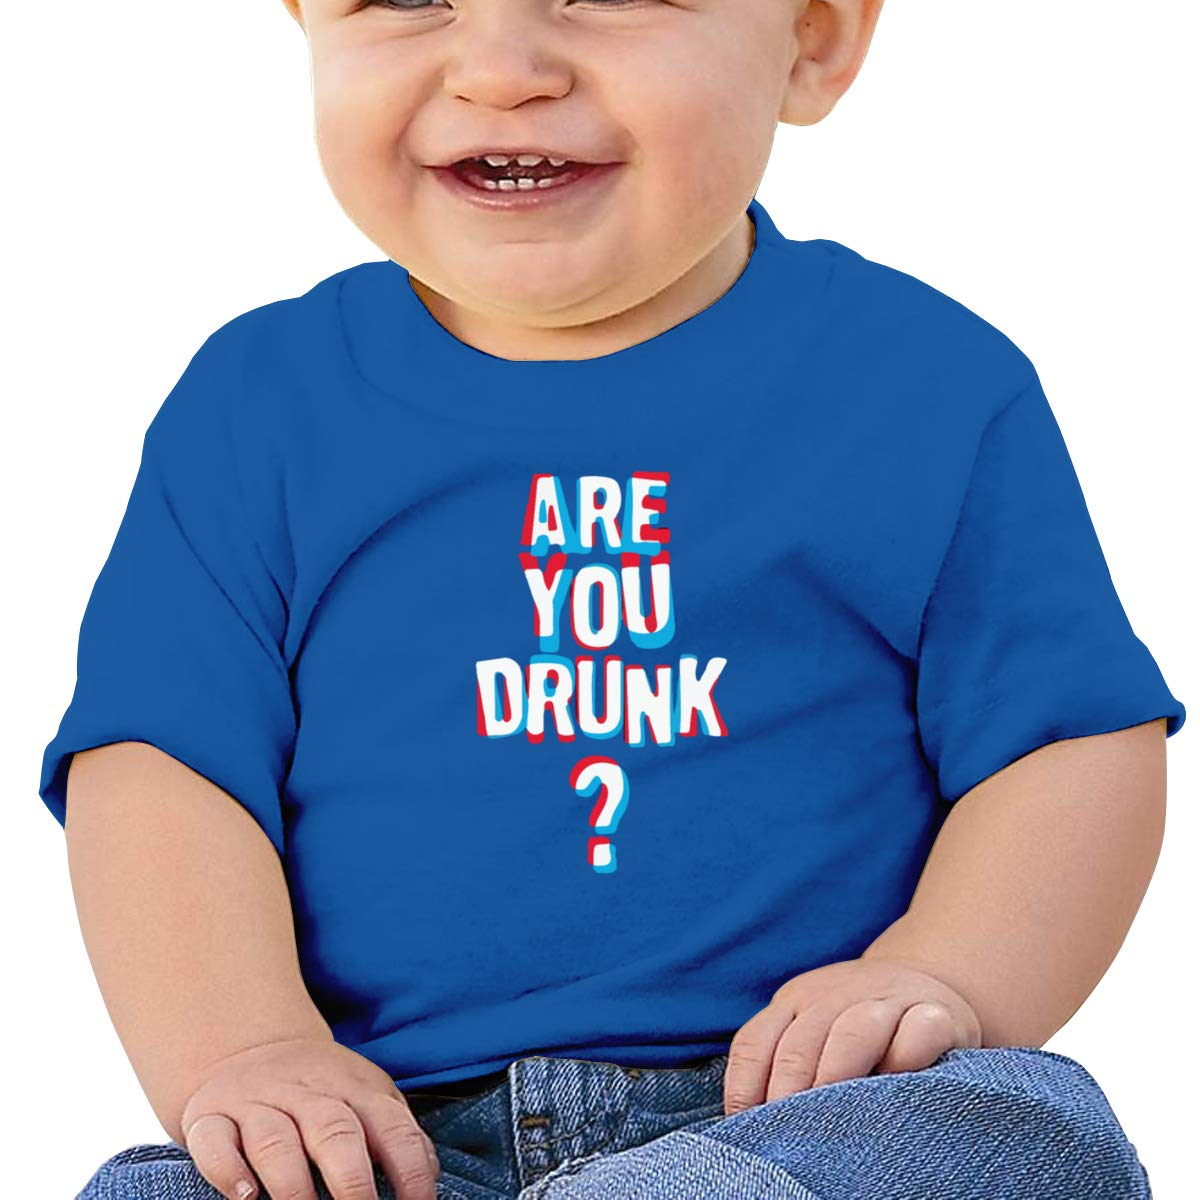 are You Drunk Short Sleeves Shirt Baby Boy Toddlers